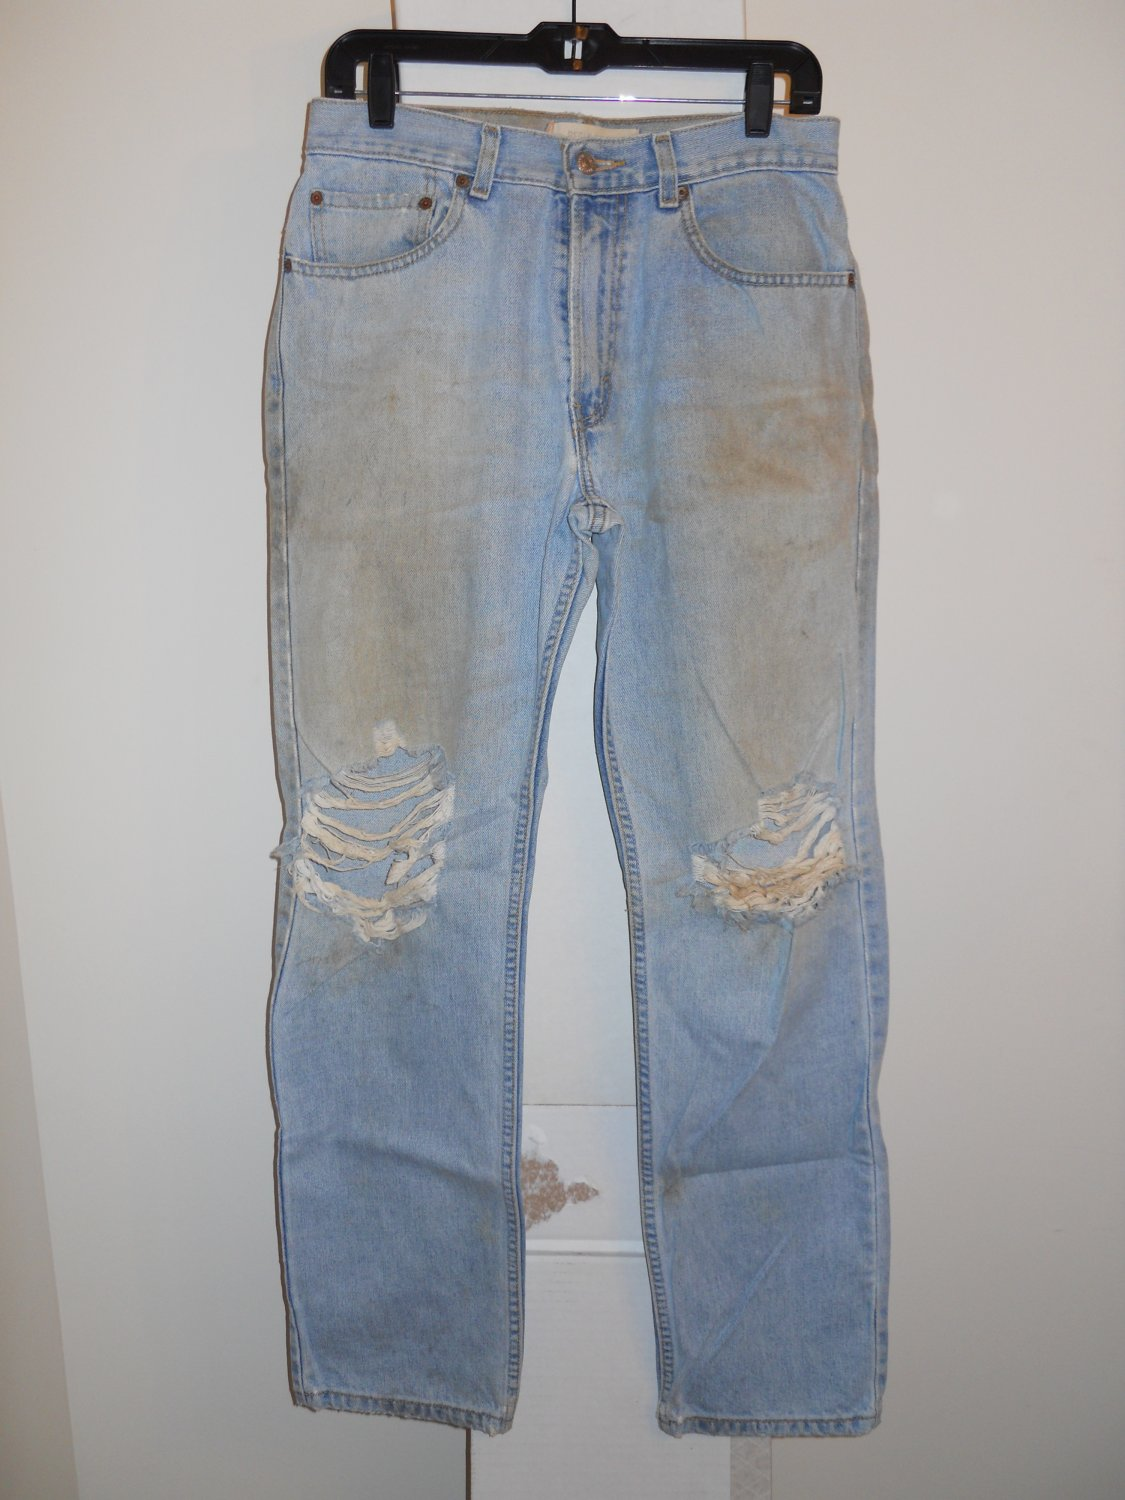 Levi 505 Regular Fit used worn torn stained distressed blue denim jeans men's 32x32